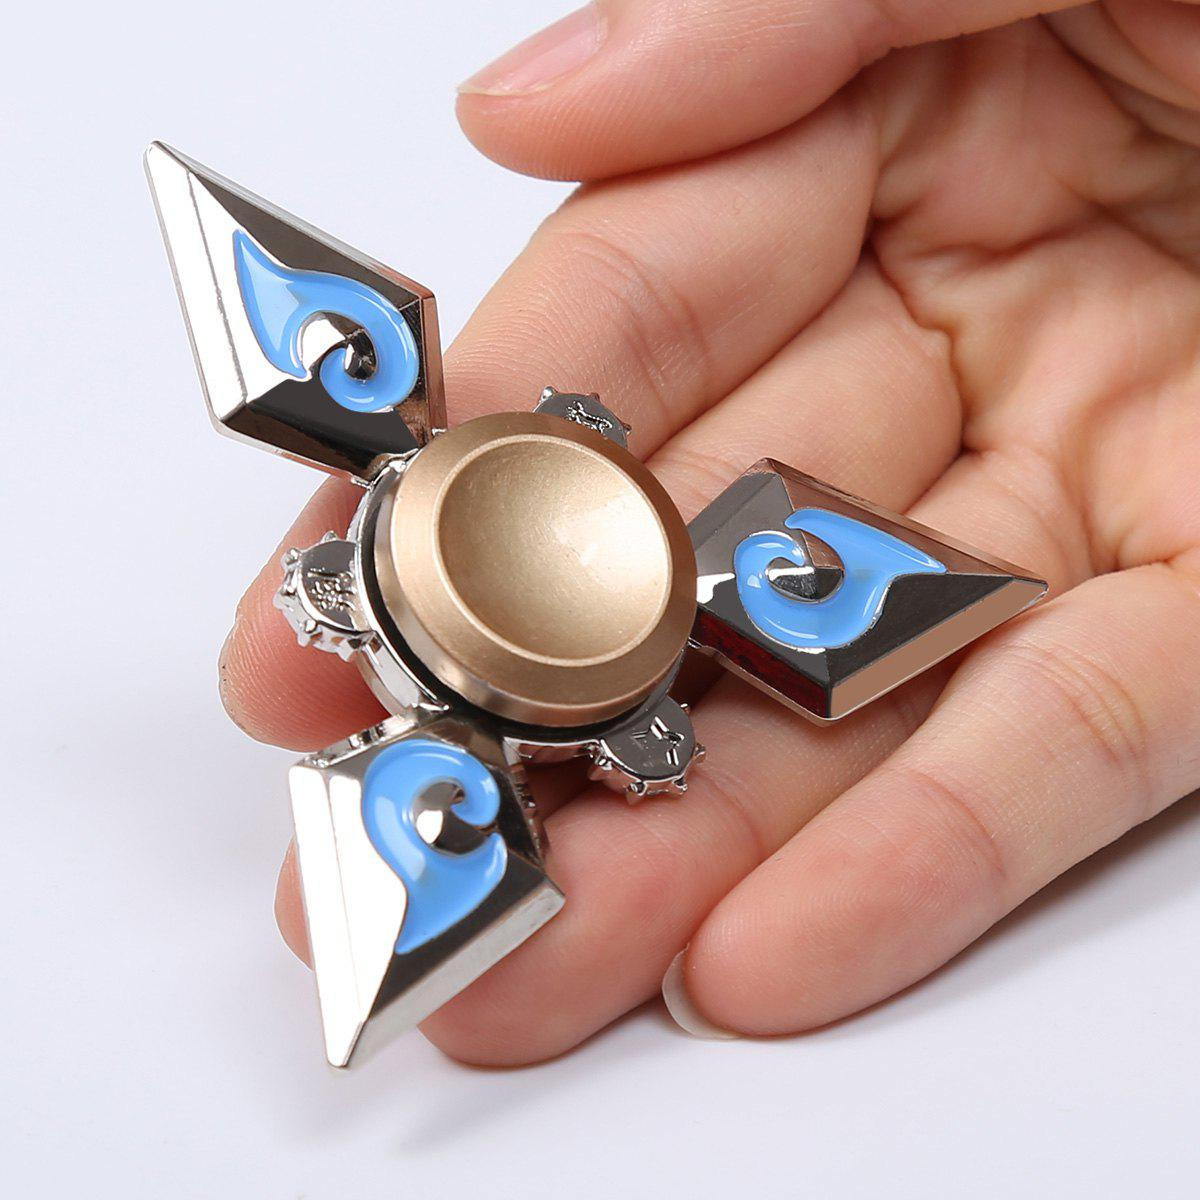 Edc Metal Fidget Hand Tri Spinner Toy For Relaxing Silver